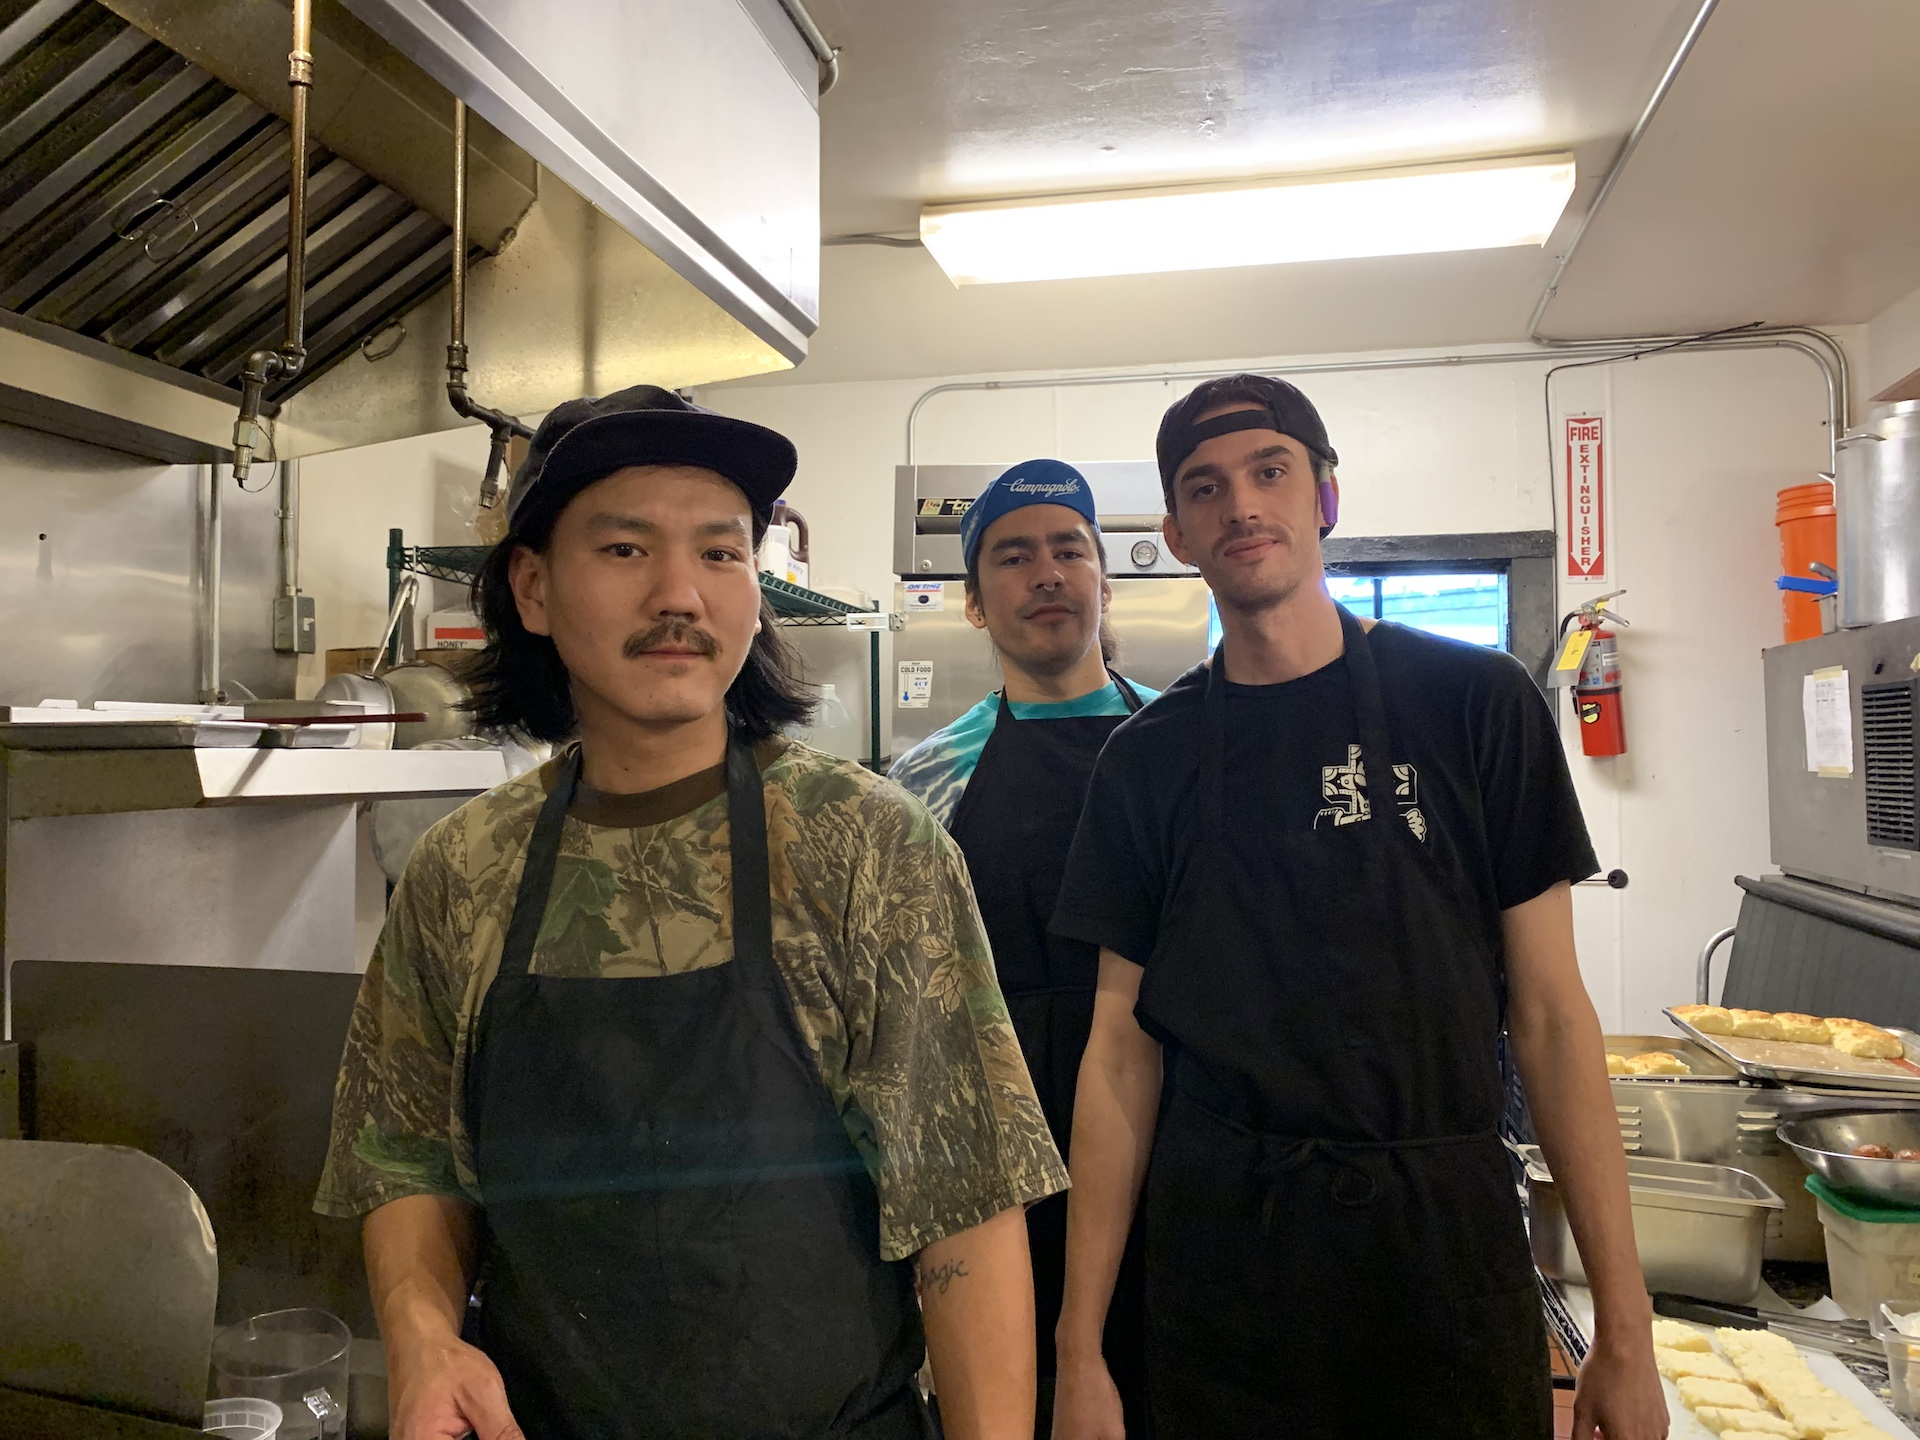 Lovely's chef Mikey Yoon along with Javi Palacios and Cameron Kauzer working a pop-up at Eli's Mile High Club.